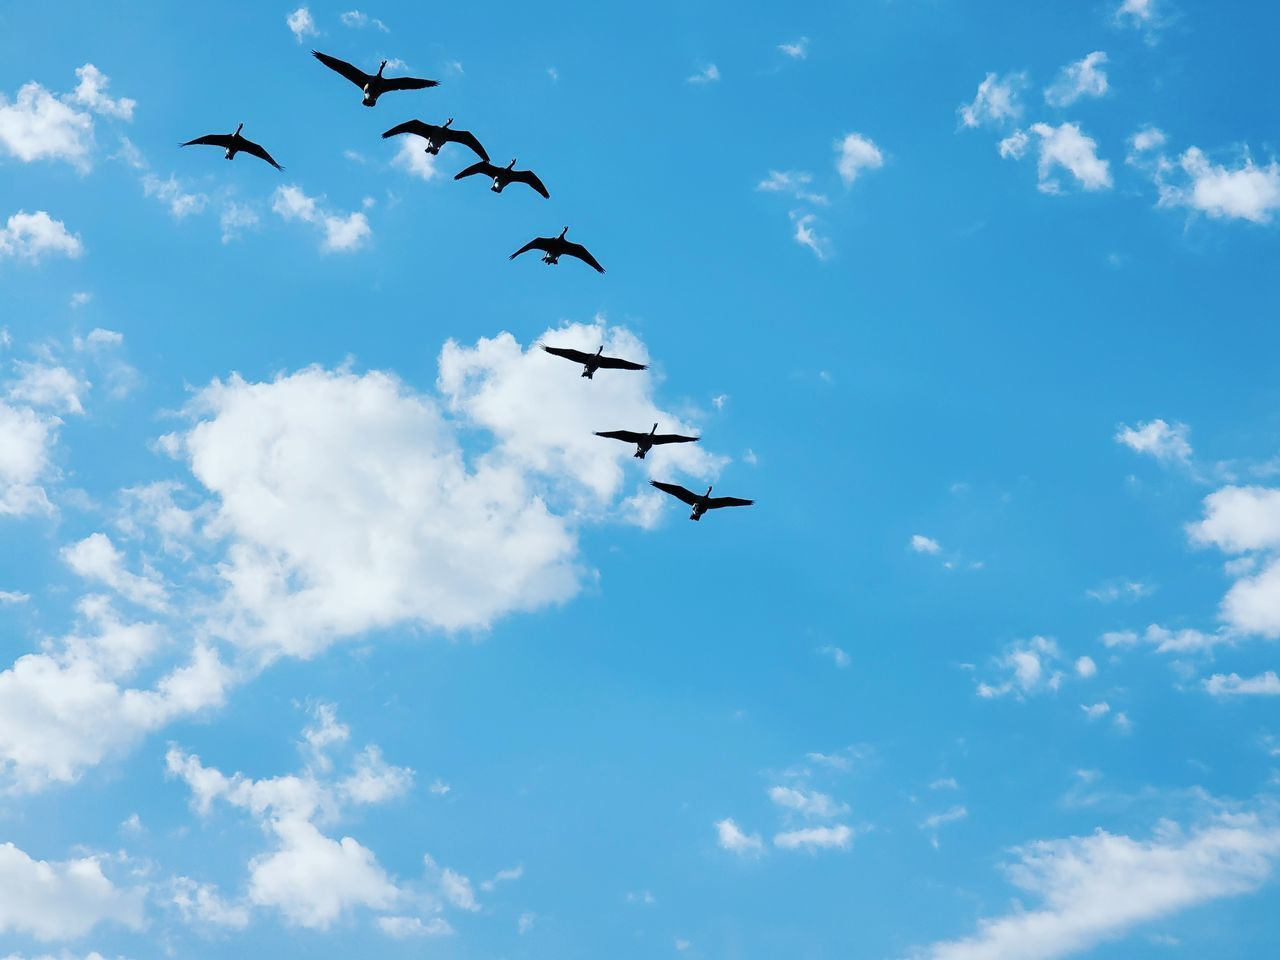 LOW ANGLE VIEW OF BIRDS IN SKY